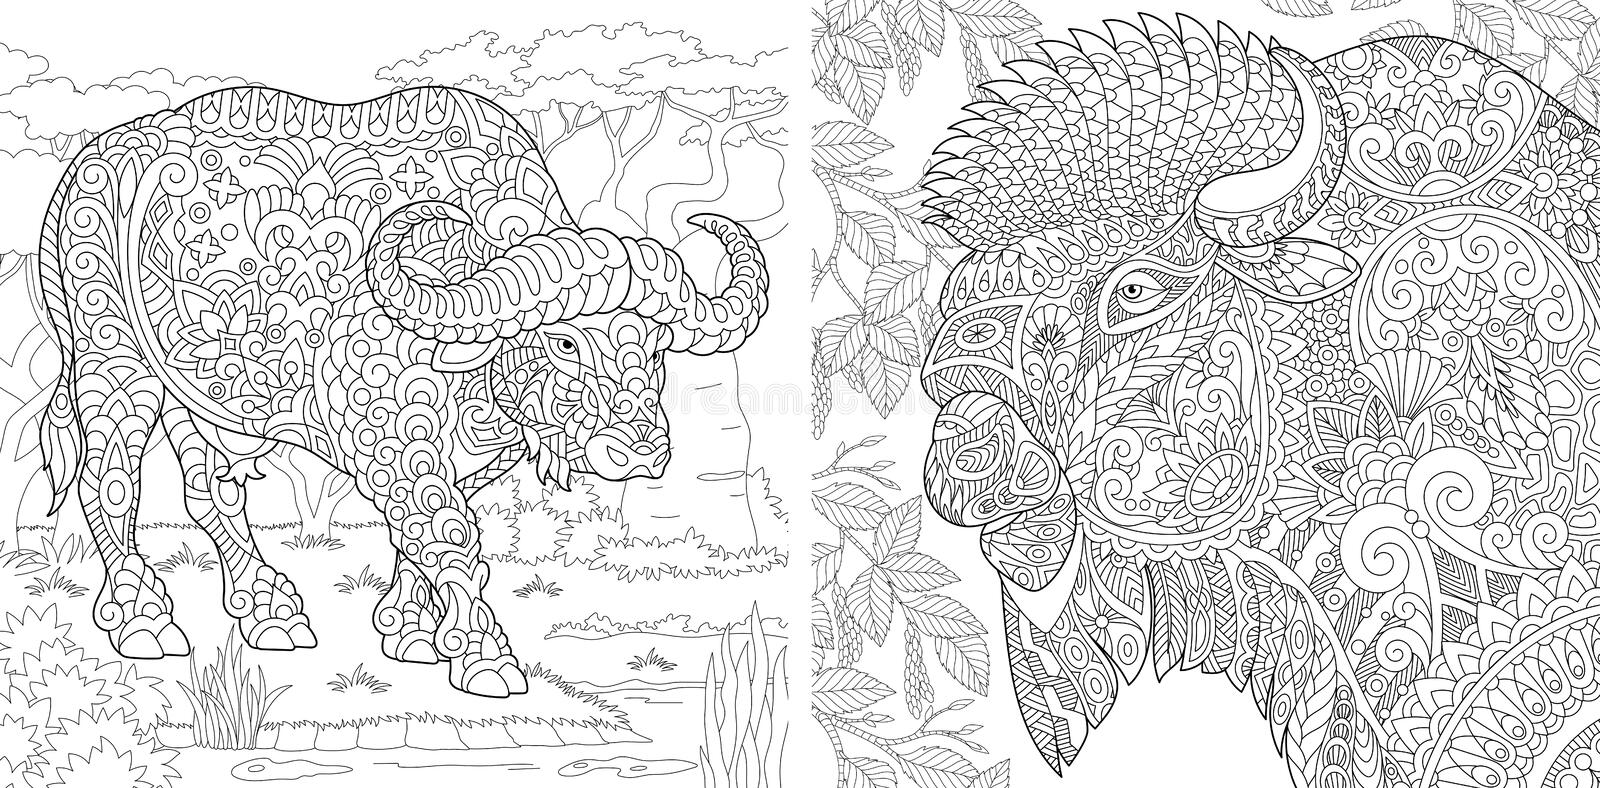 Coloring Pages. Coloring Book for adults. Colouring pictures with buffalo and bison. Antistress freehand sketch drawing with stock images